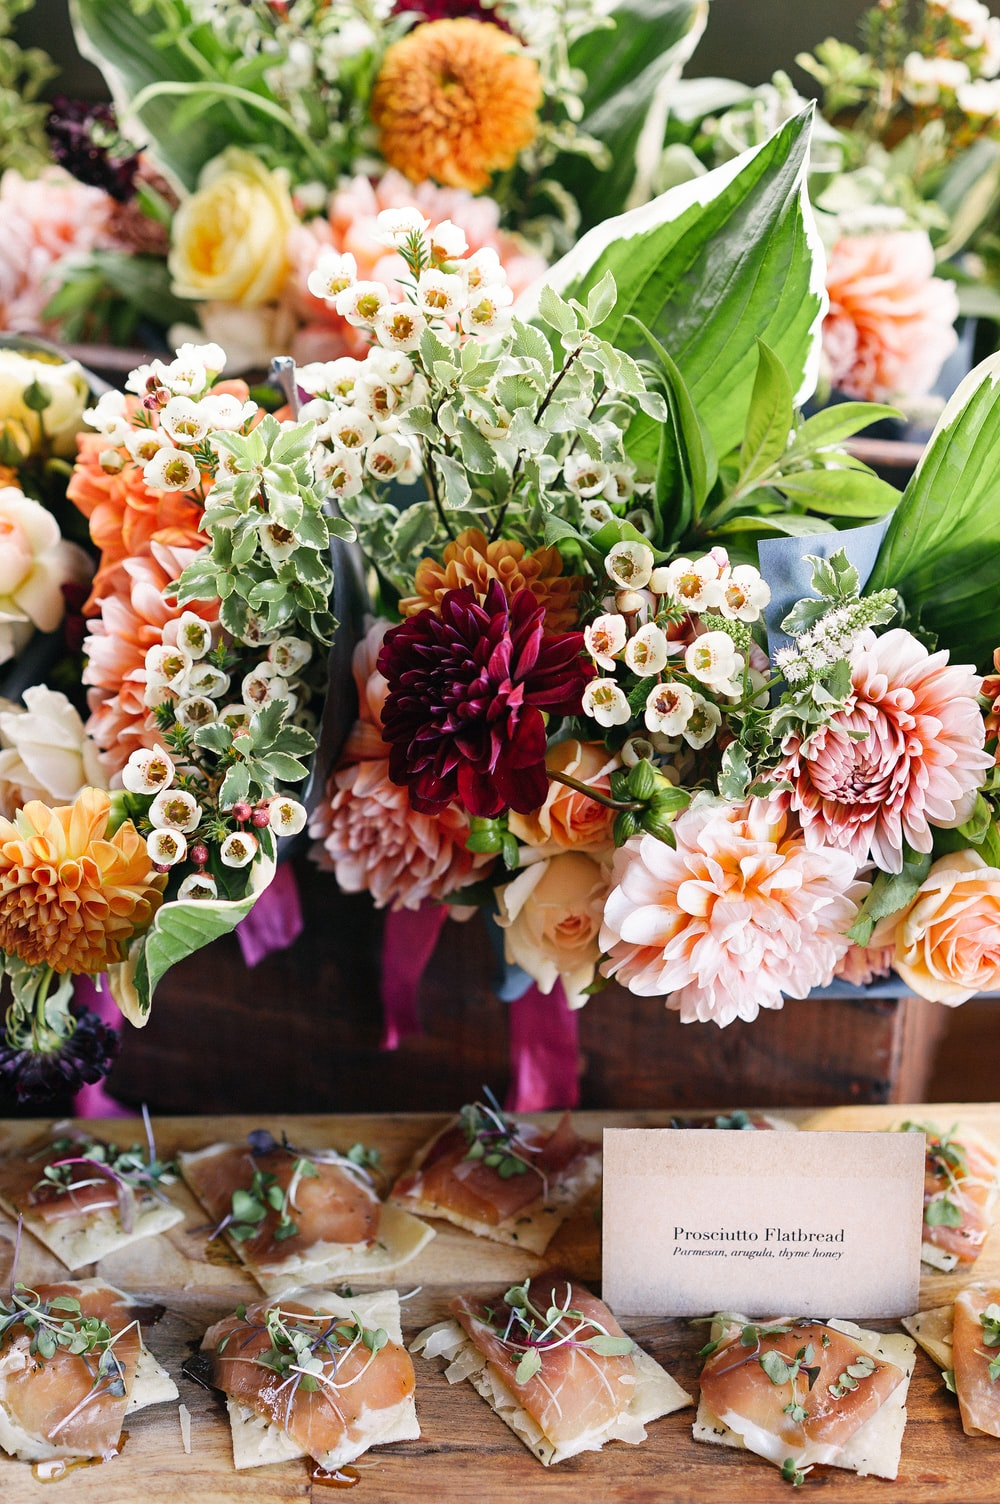 Dessert champagne and flowers photo by sasha stories bouquet of flowers with salami prosciutto flatbread snacks on table in spring izmirmasajfo Gallery